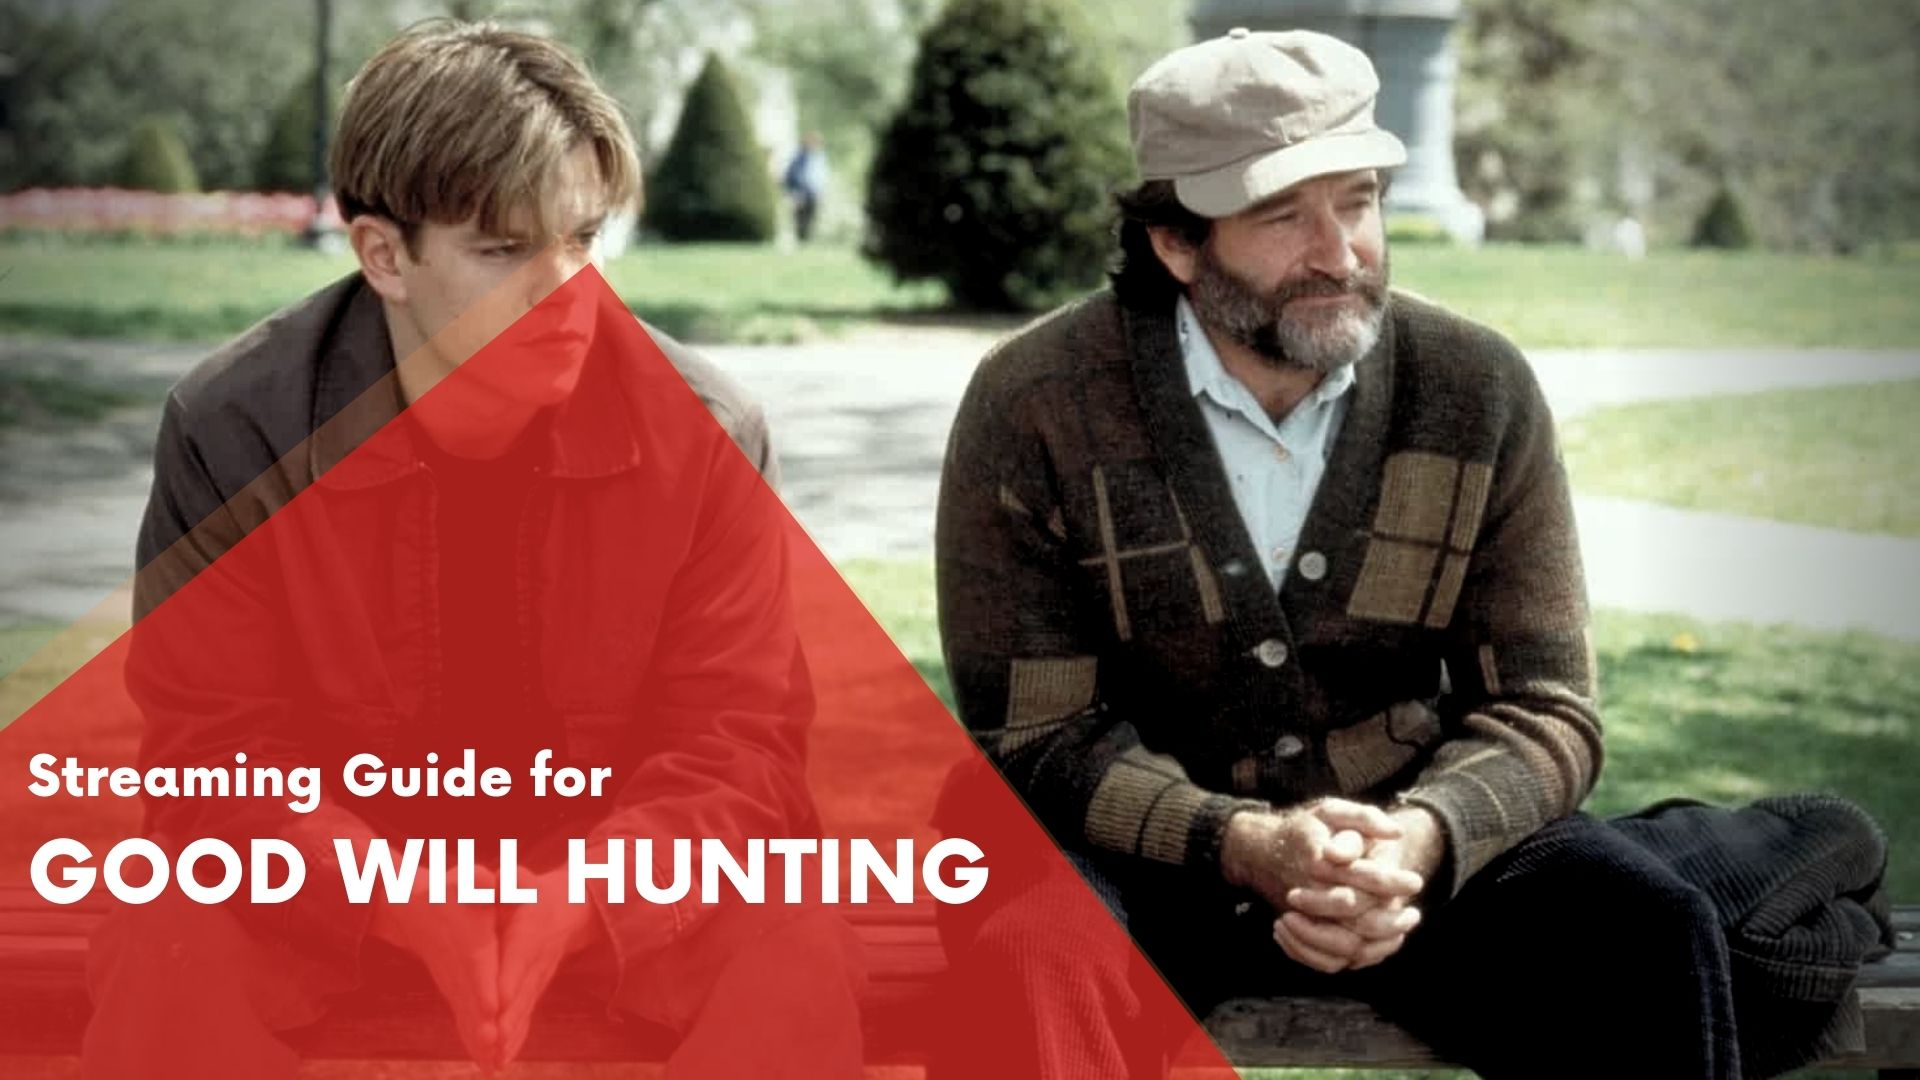 Answering if Good Will Hunting can be streamed on Hulu